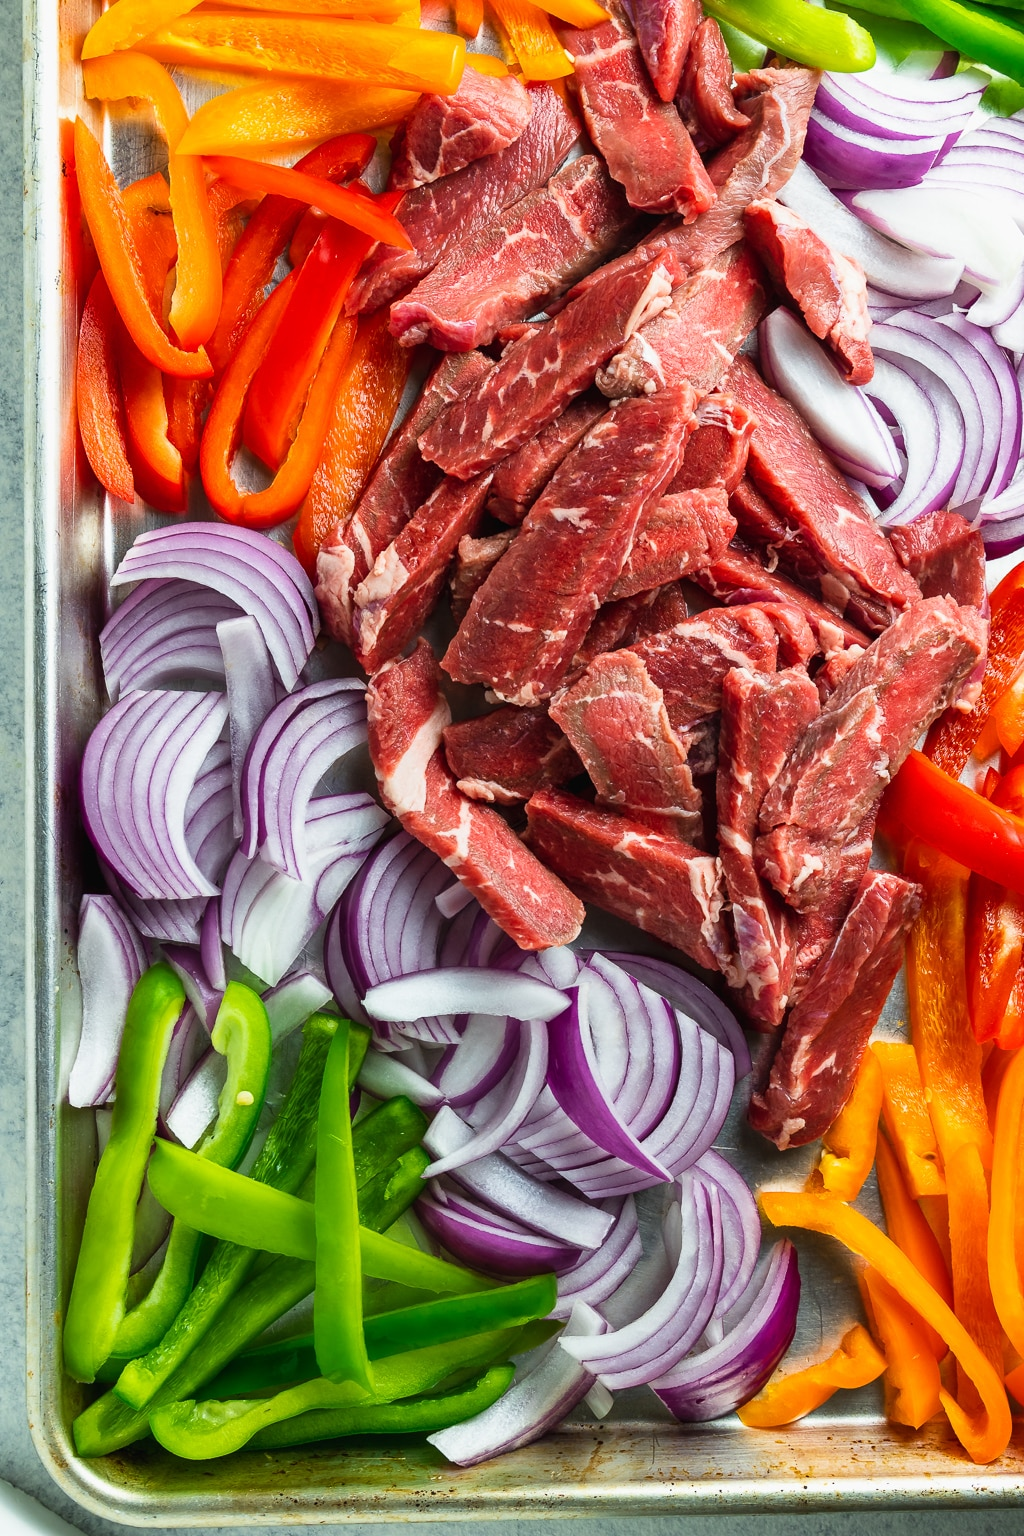 steak and vegetables on a sheet pan